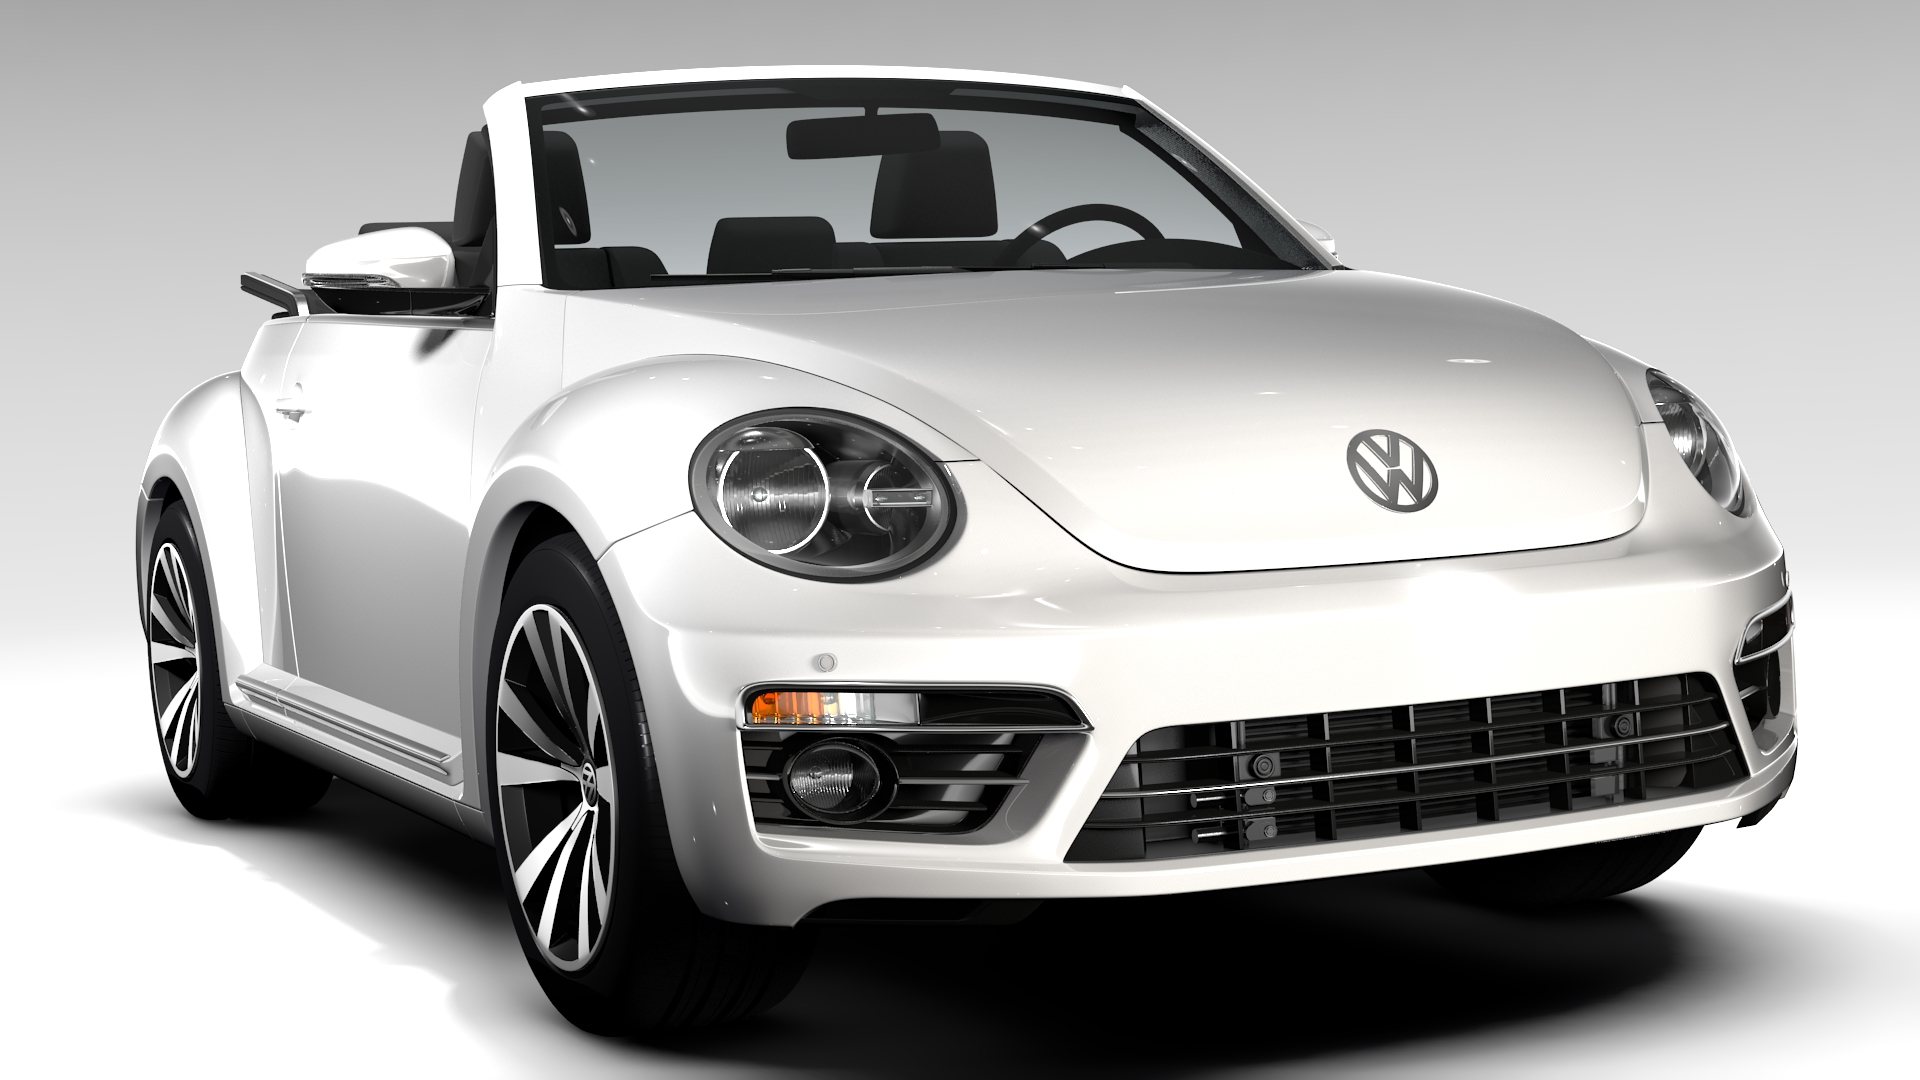 vw beetle cabriolet 2017 by creator 3d 3docean. Black Bedroom Furniture Sets. Home Design Ideas